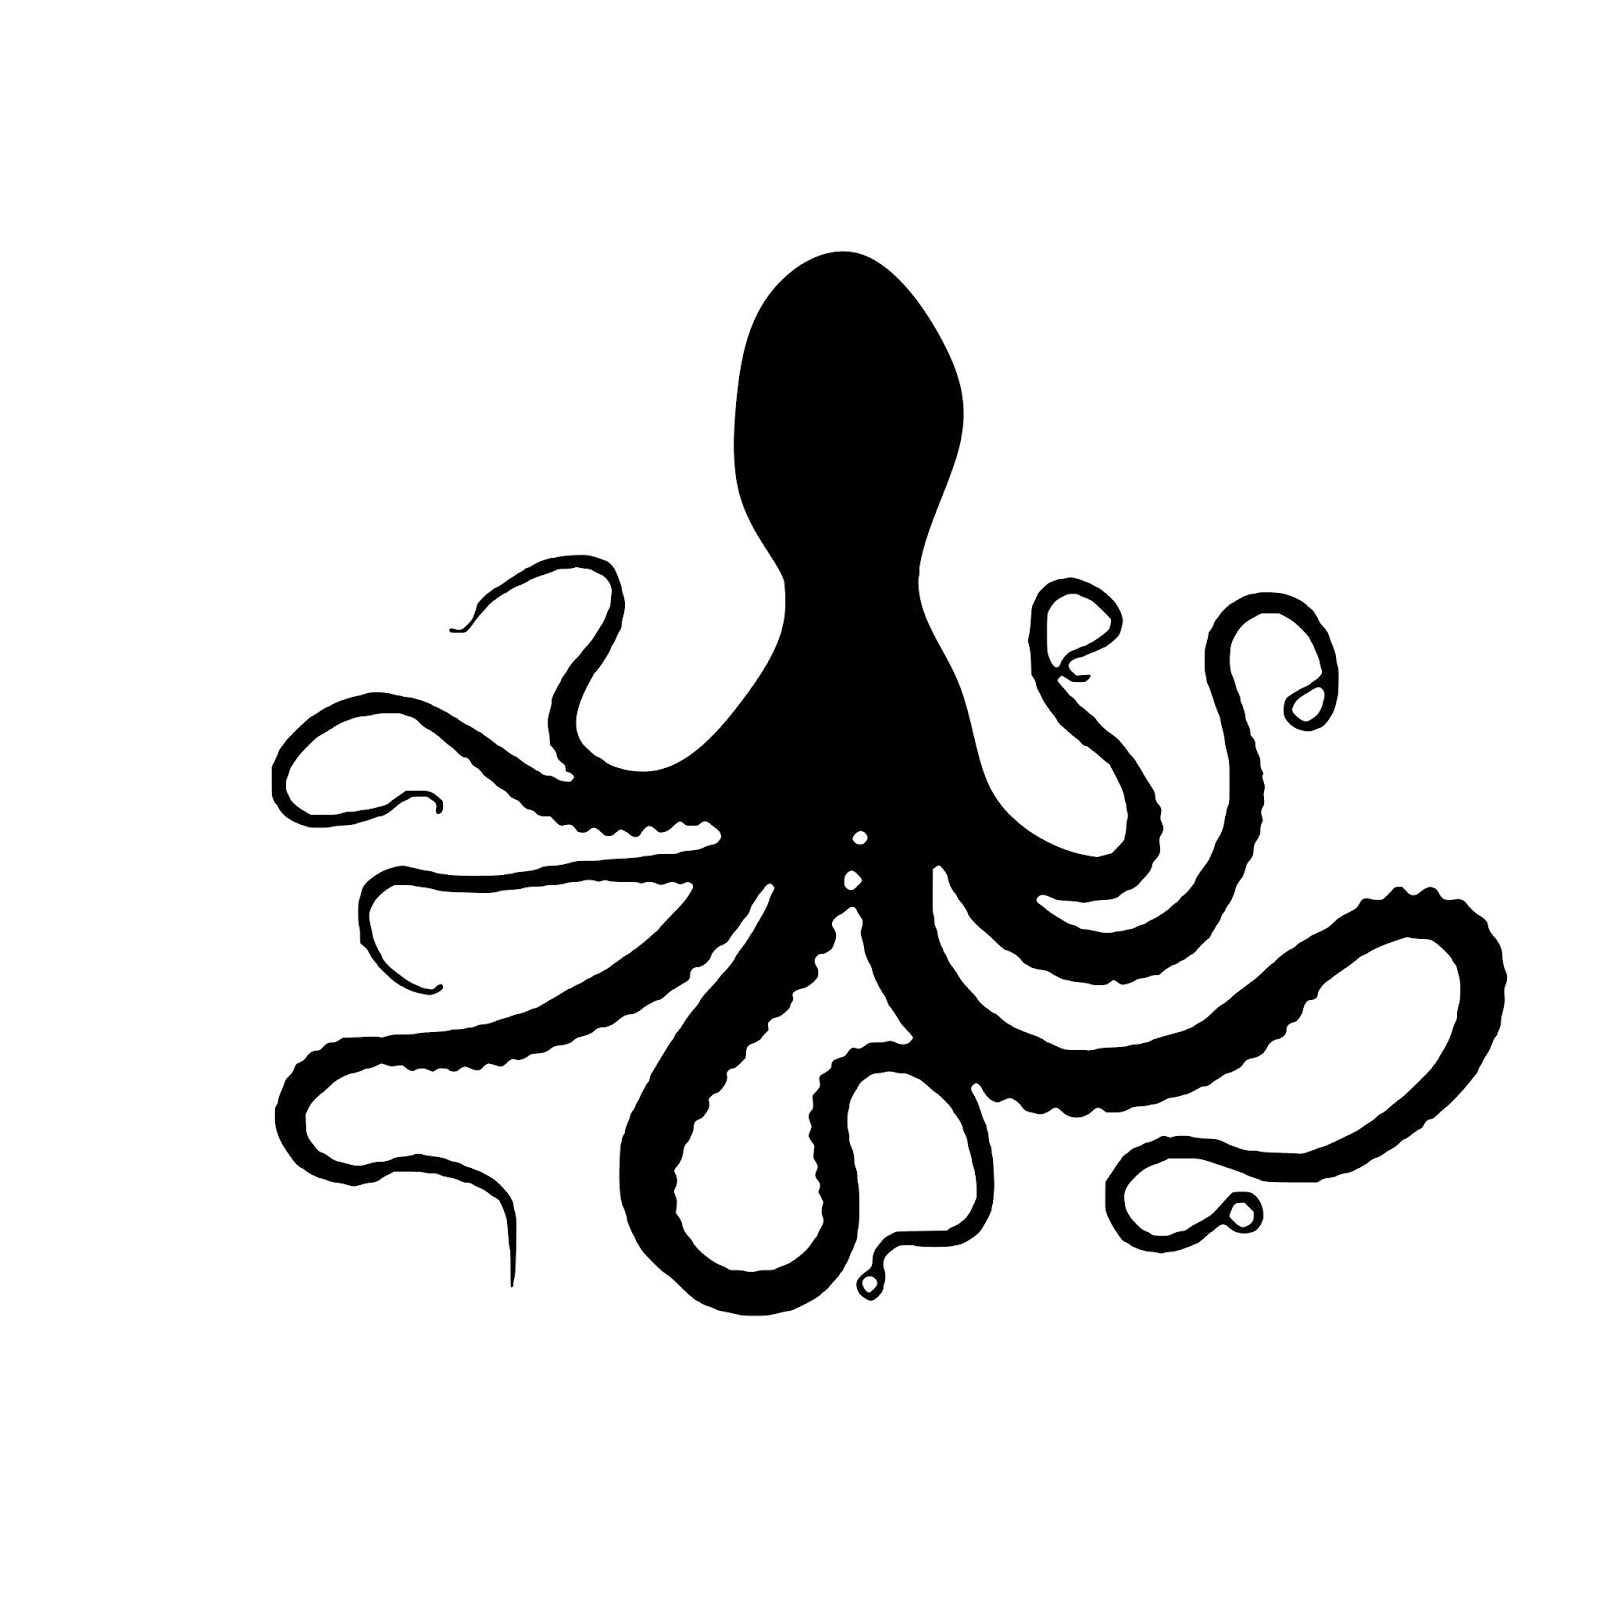 Illustration of octopus tentacle silhouette